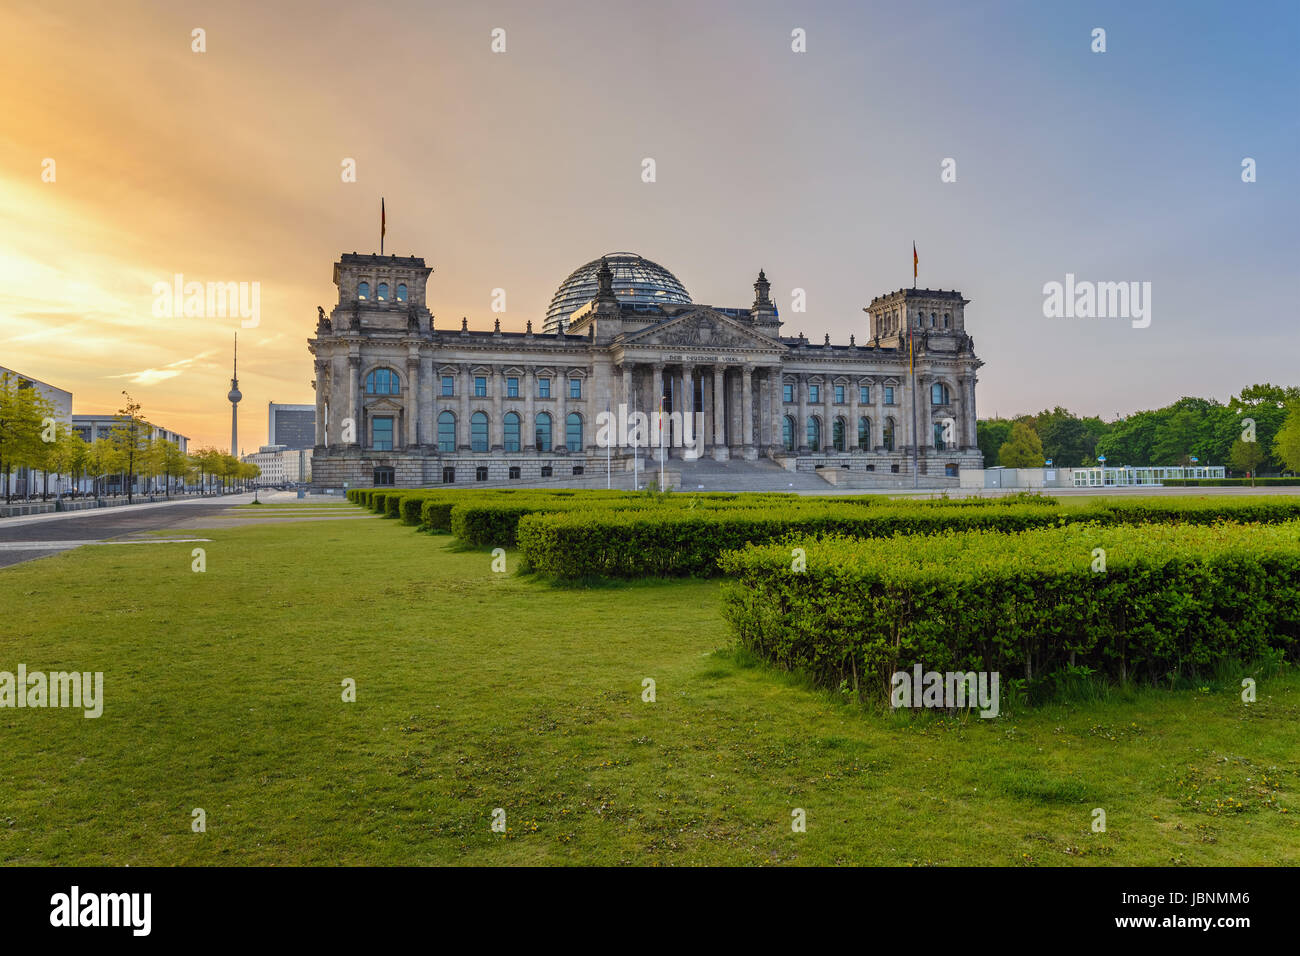 Berlin Reichstag (Parlement allemand) quand le lever du soleil, Berlin, Allemagne Photo Stock